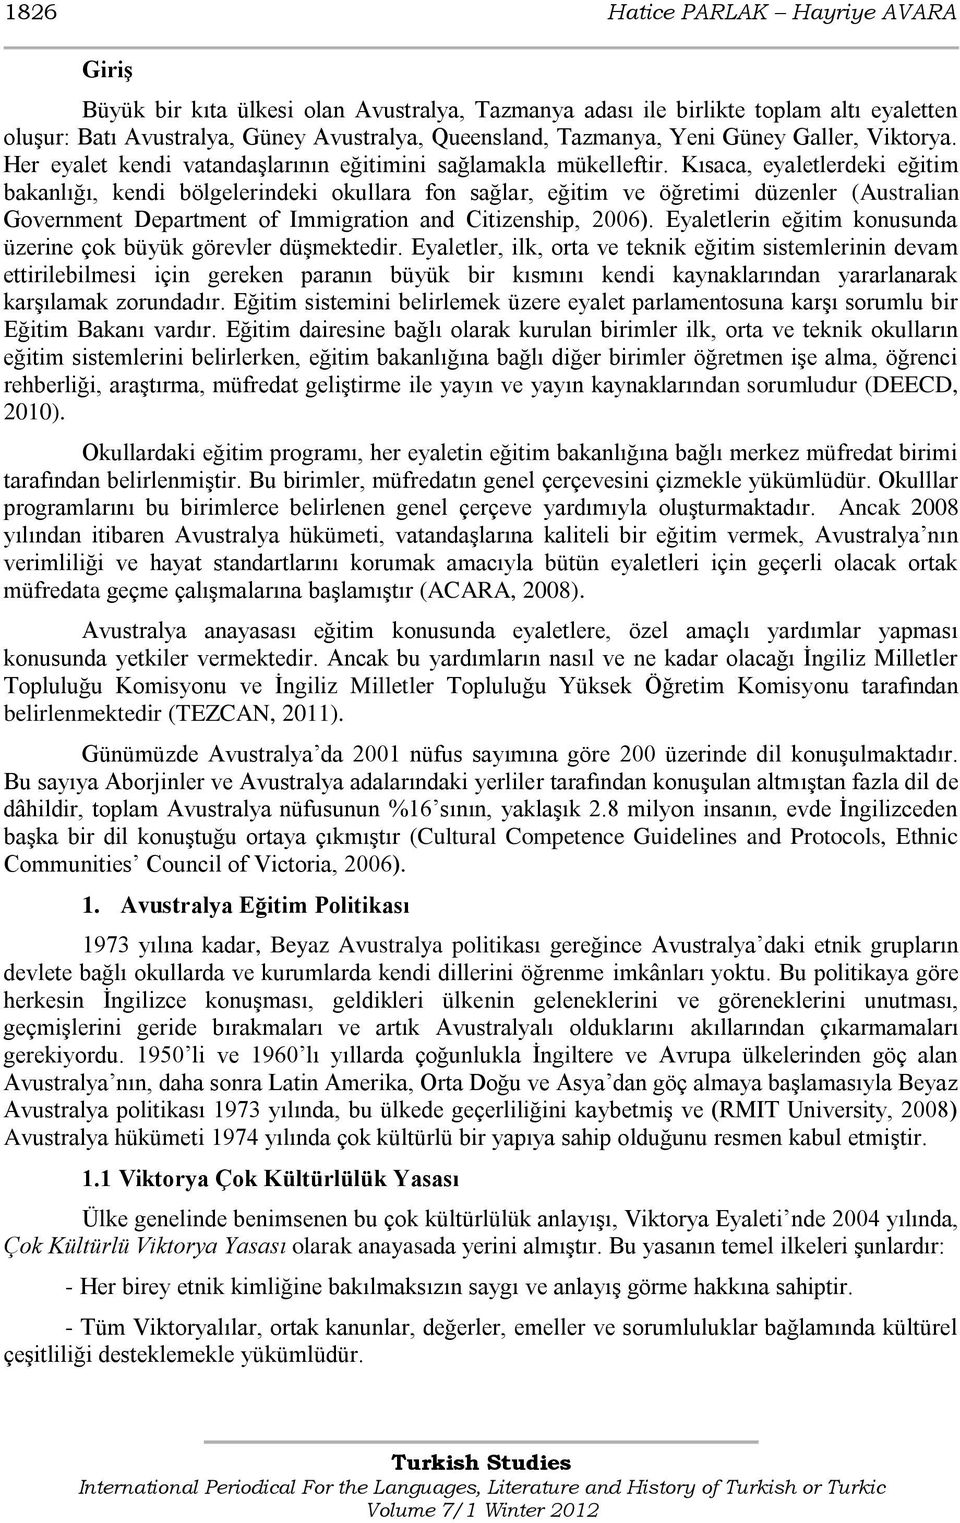 Kısaca, eyaletlerdeki eğitim bakanlığı, kendi bölgelerindeki okullara fon sağlar, eğitim ve öğretimi düzenler (Australian Government Department of Immigration and Citizenship, 2006).